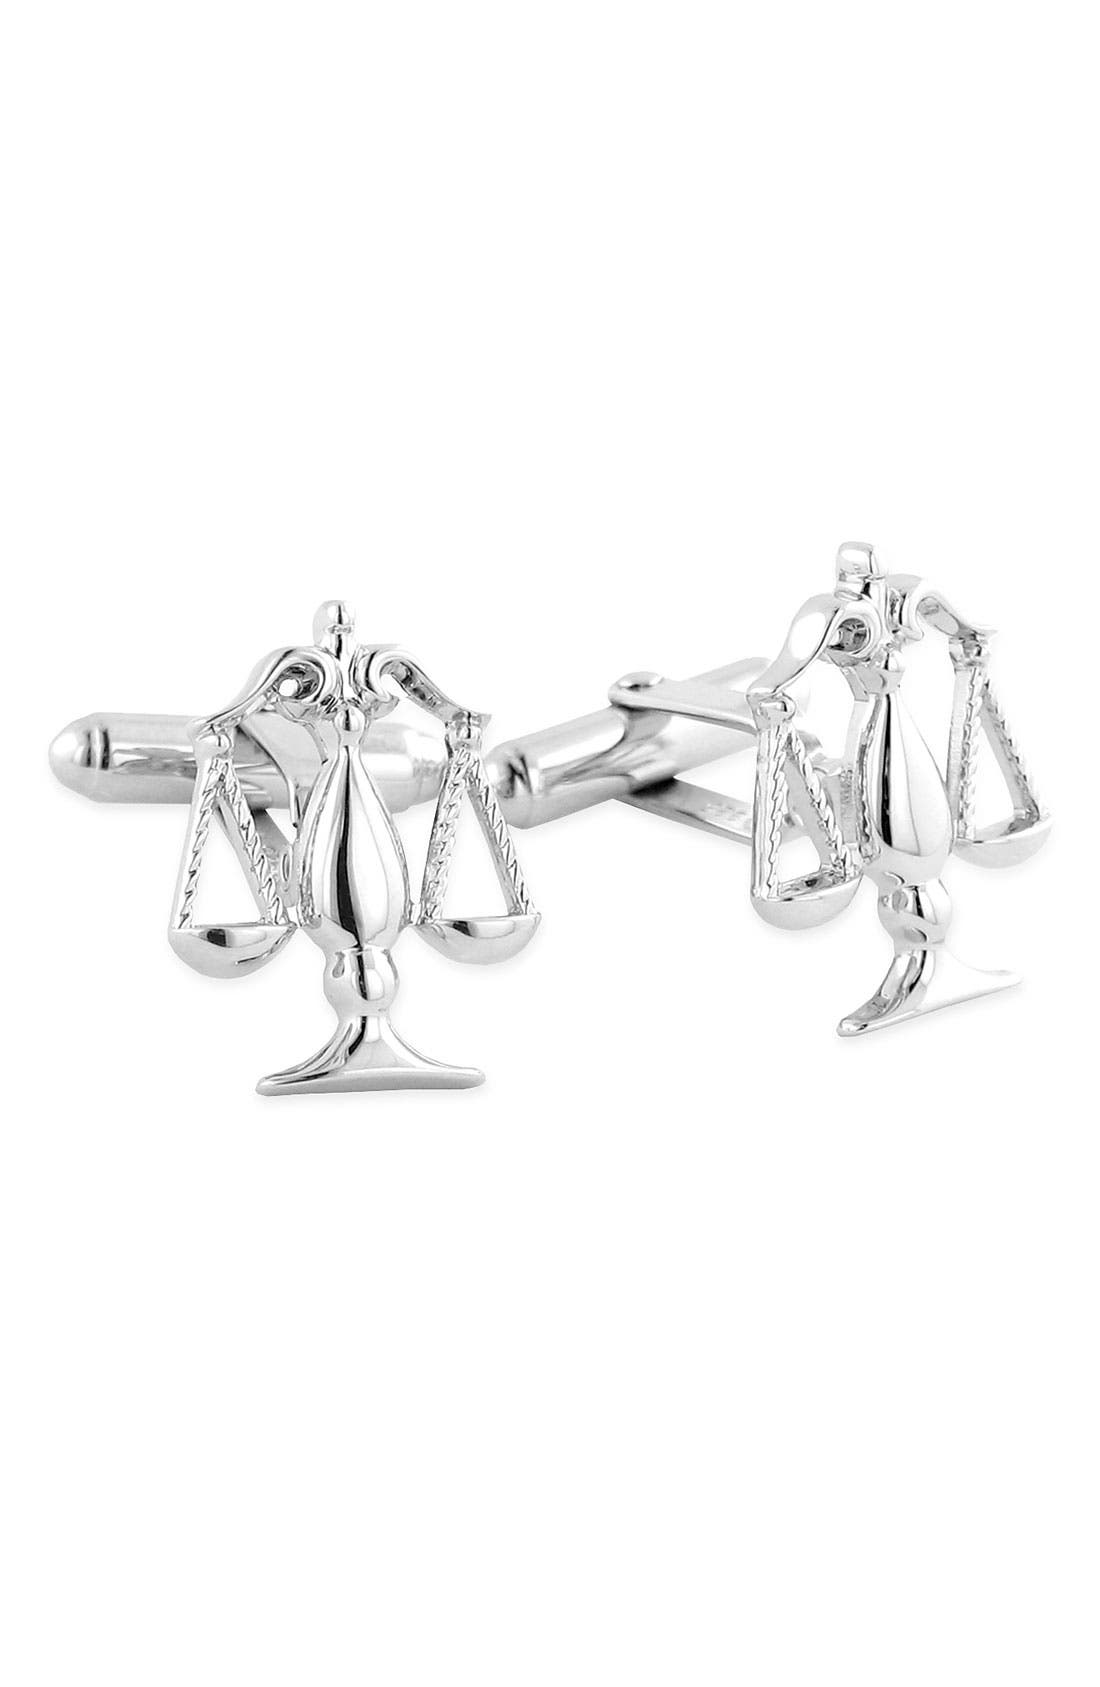 Main Image - David Donahue 'Scales of Justice' Cuff Links